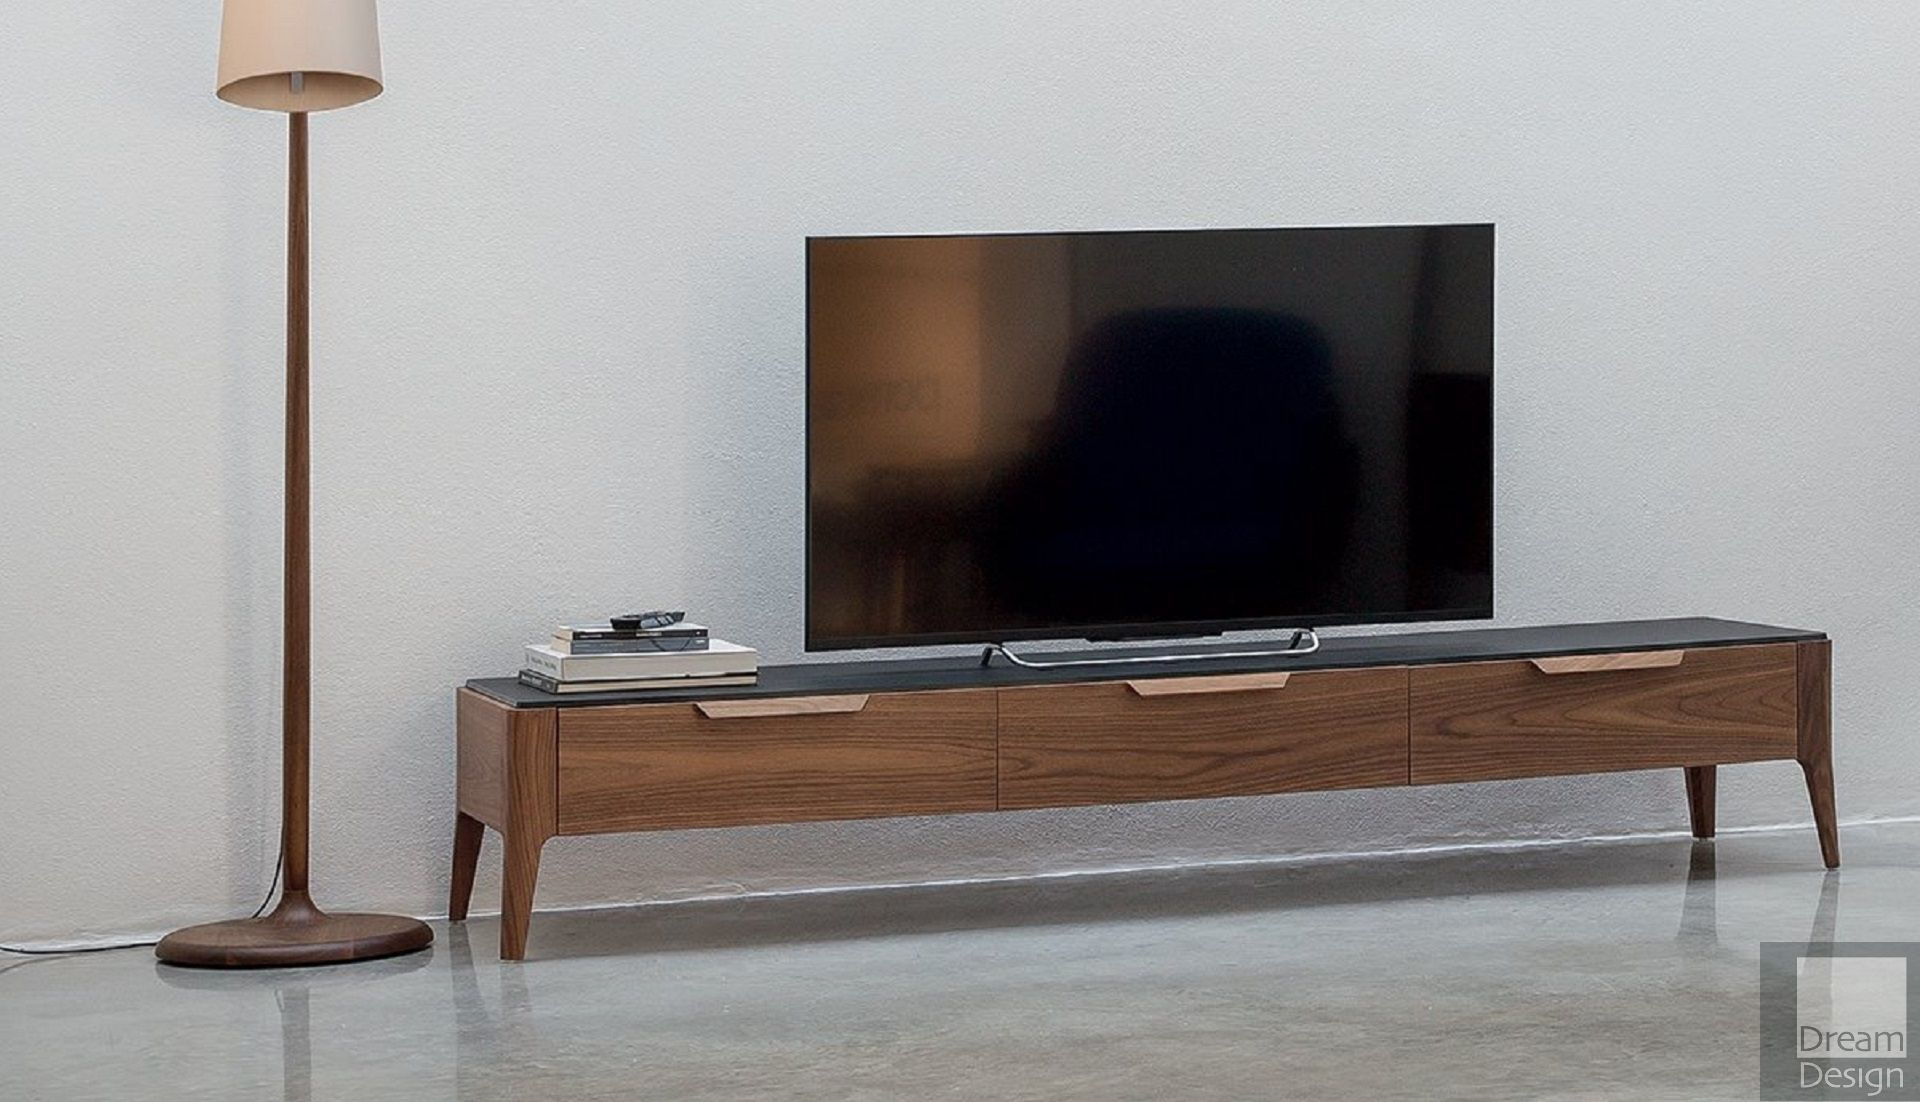 Porada Atlante Tv Stand By Carlo Ballabio Everything But Ordinary # Meuble Tv Wenge But